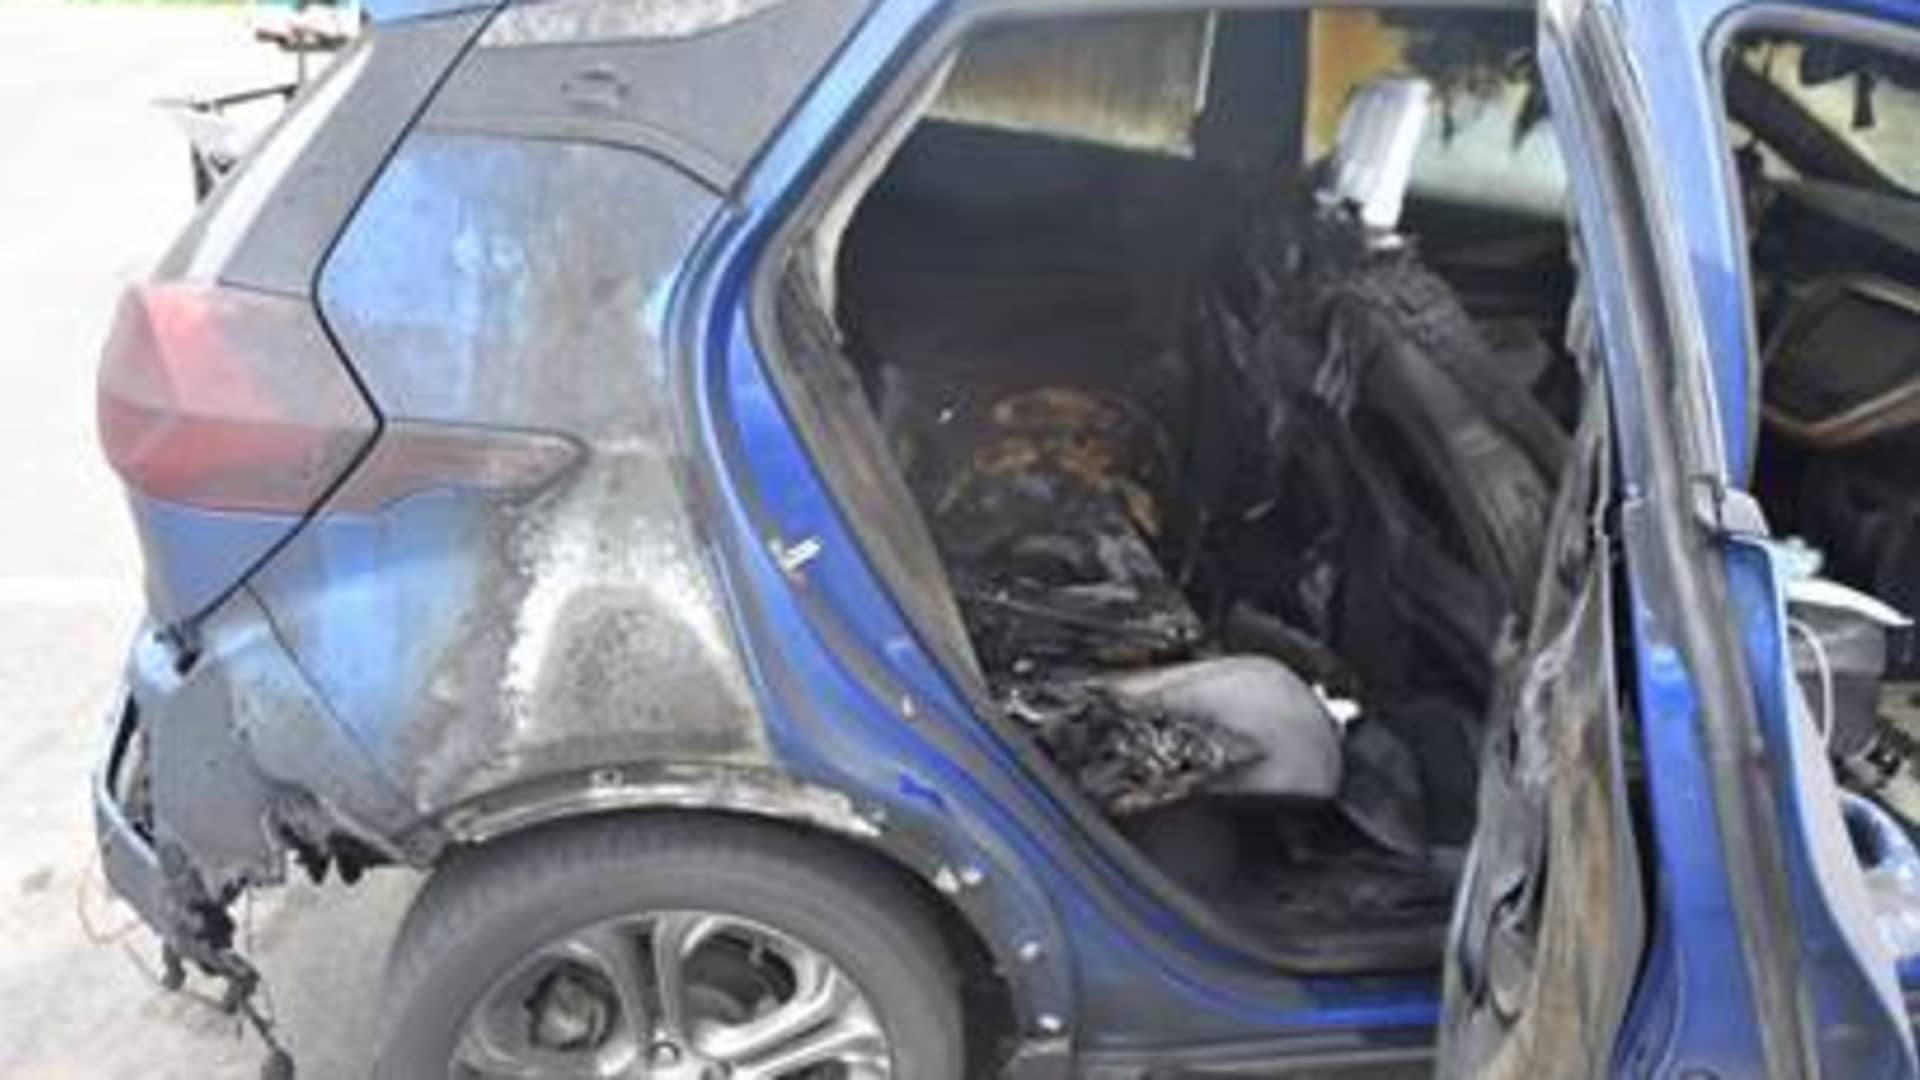 The Vermont State Police released this photo of the 2019 Chevrolet Bolt EV that caught fire on July 1, 2021 in the driveway of state Rep. Timothy Briglin, a Democrat.